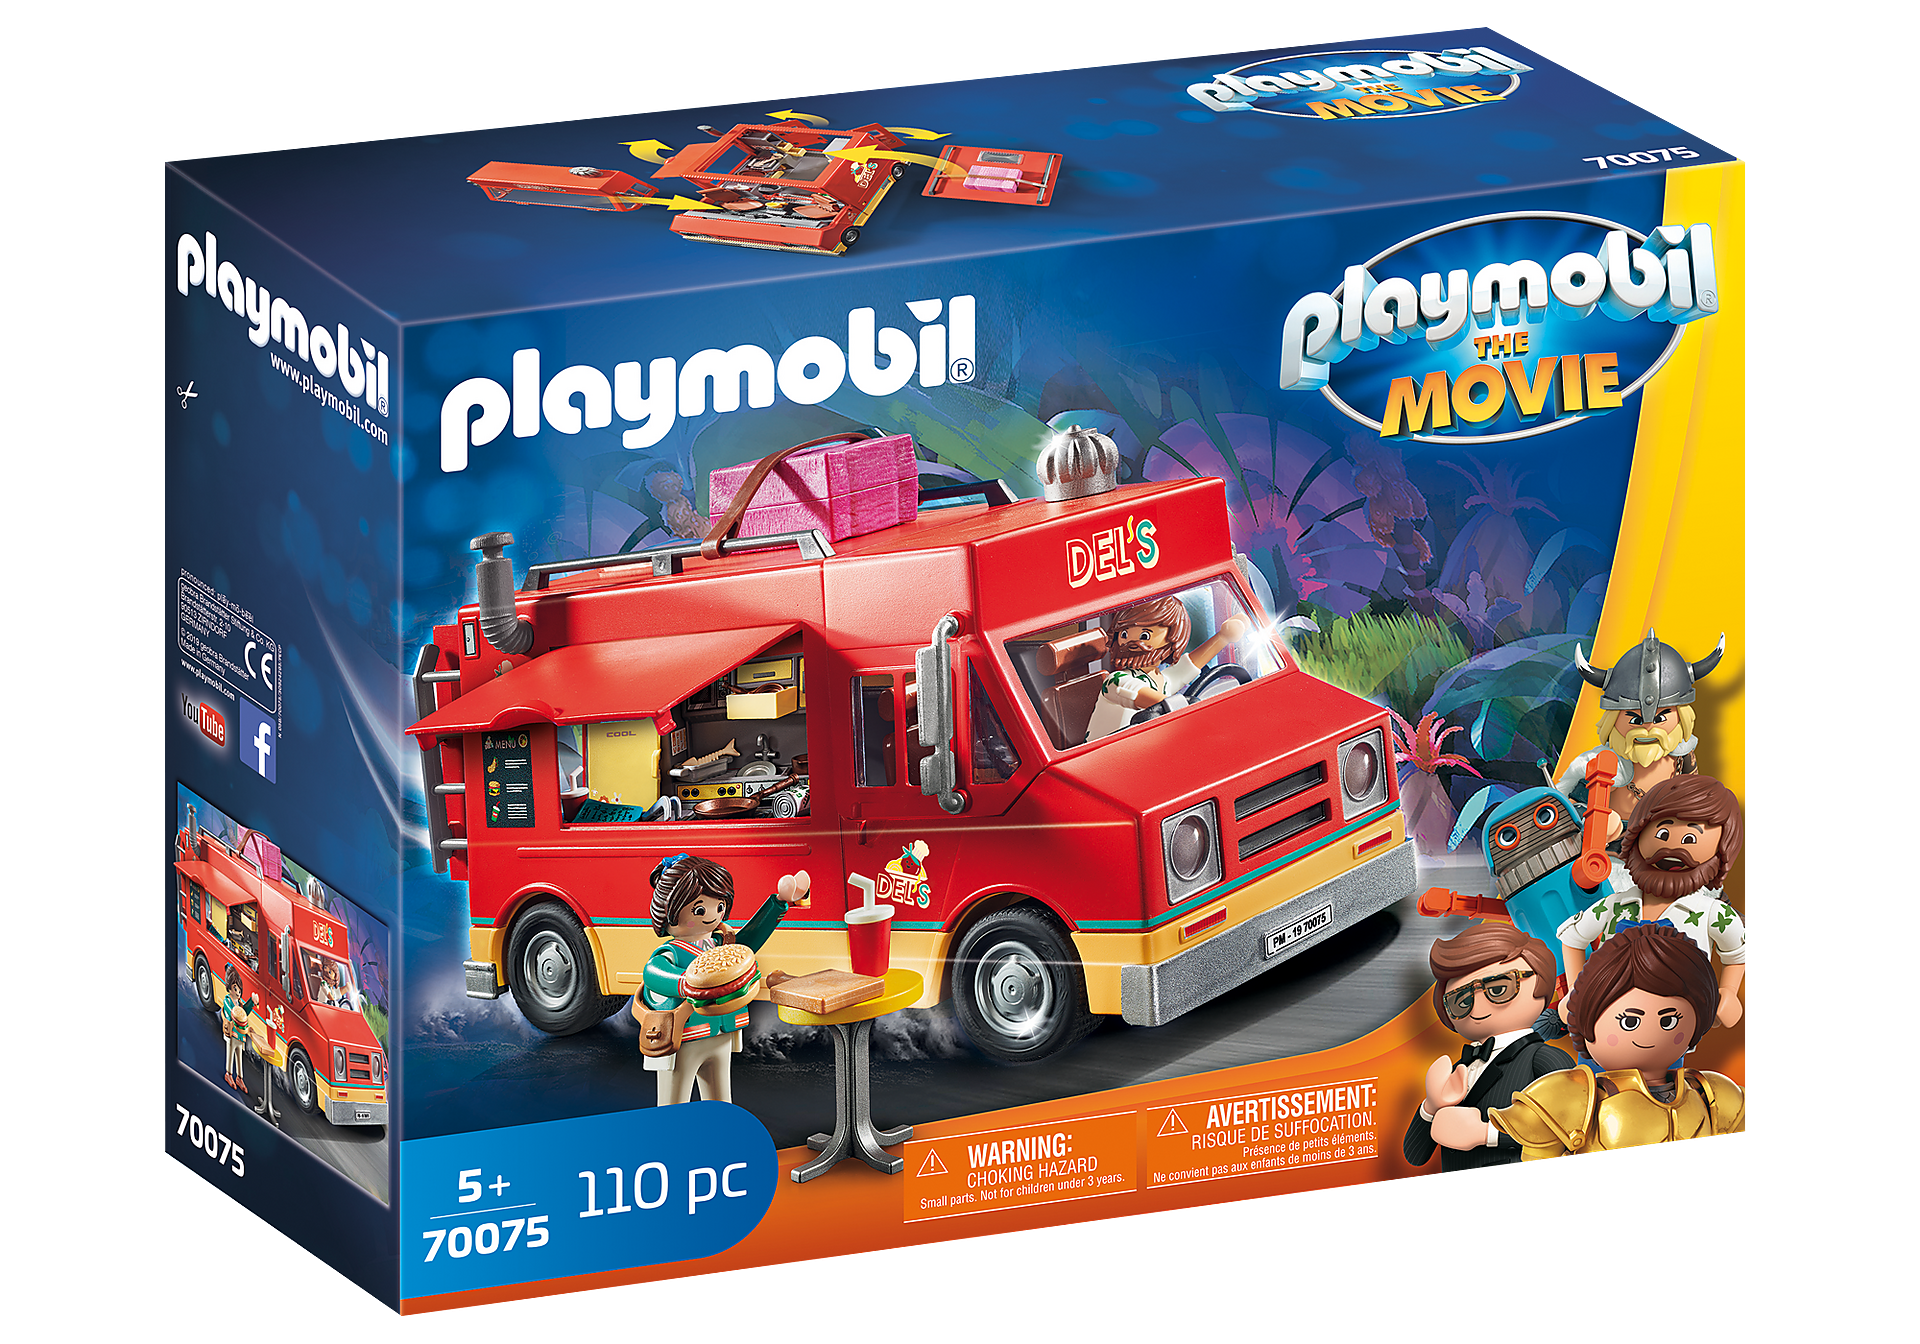 70075 PLAYMOBIL: THE MOVIE Food Truck Del zoom image2